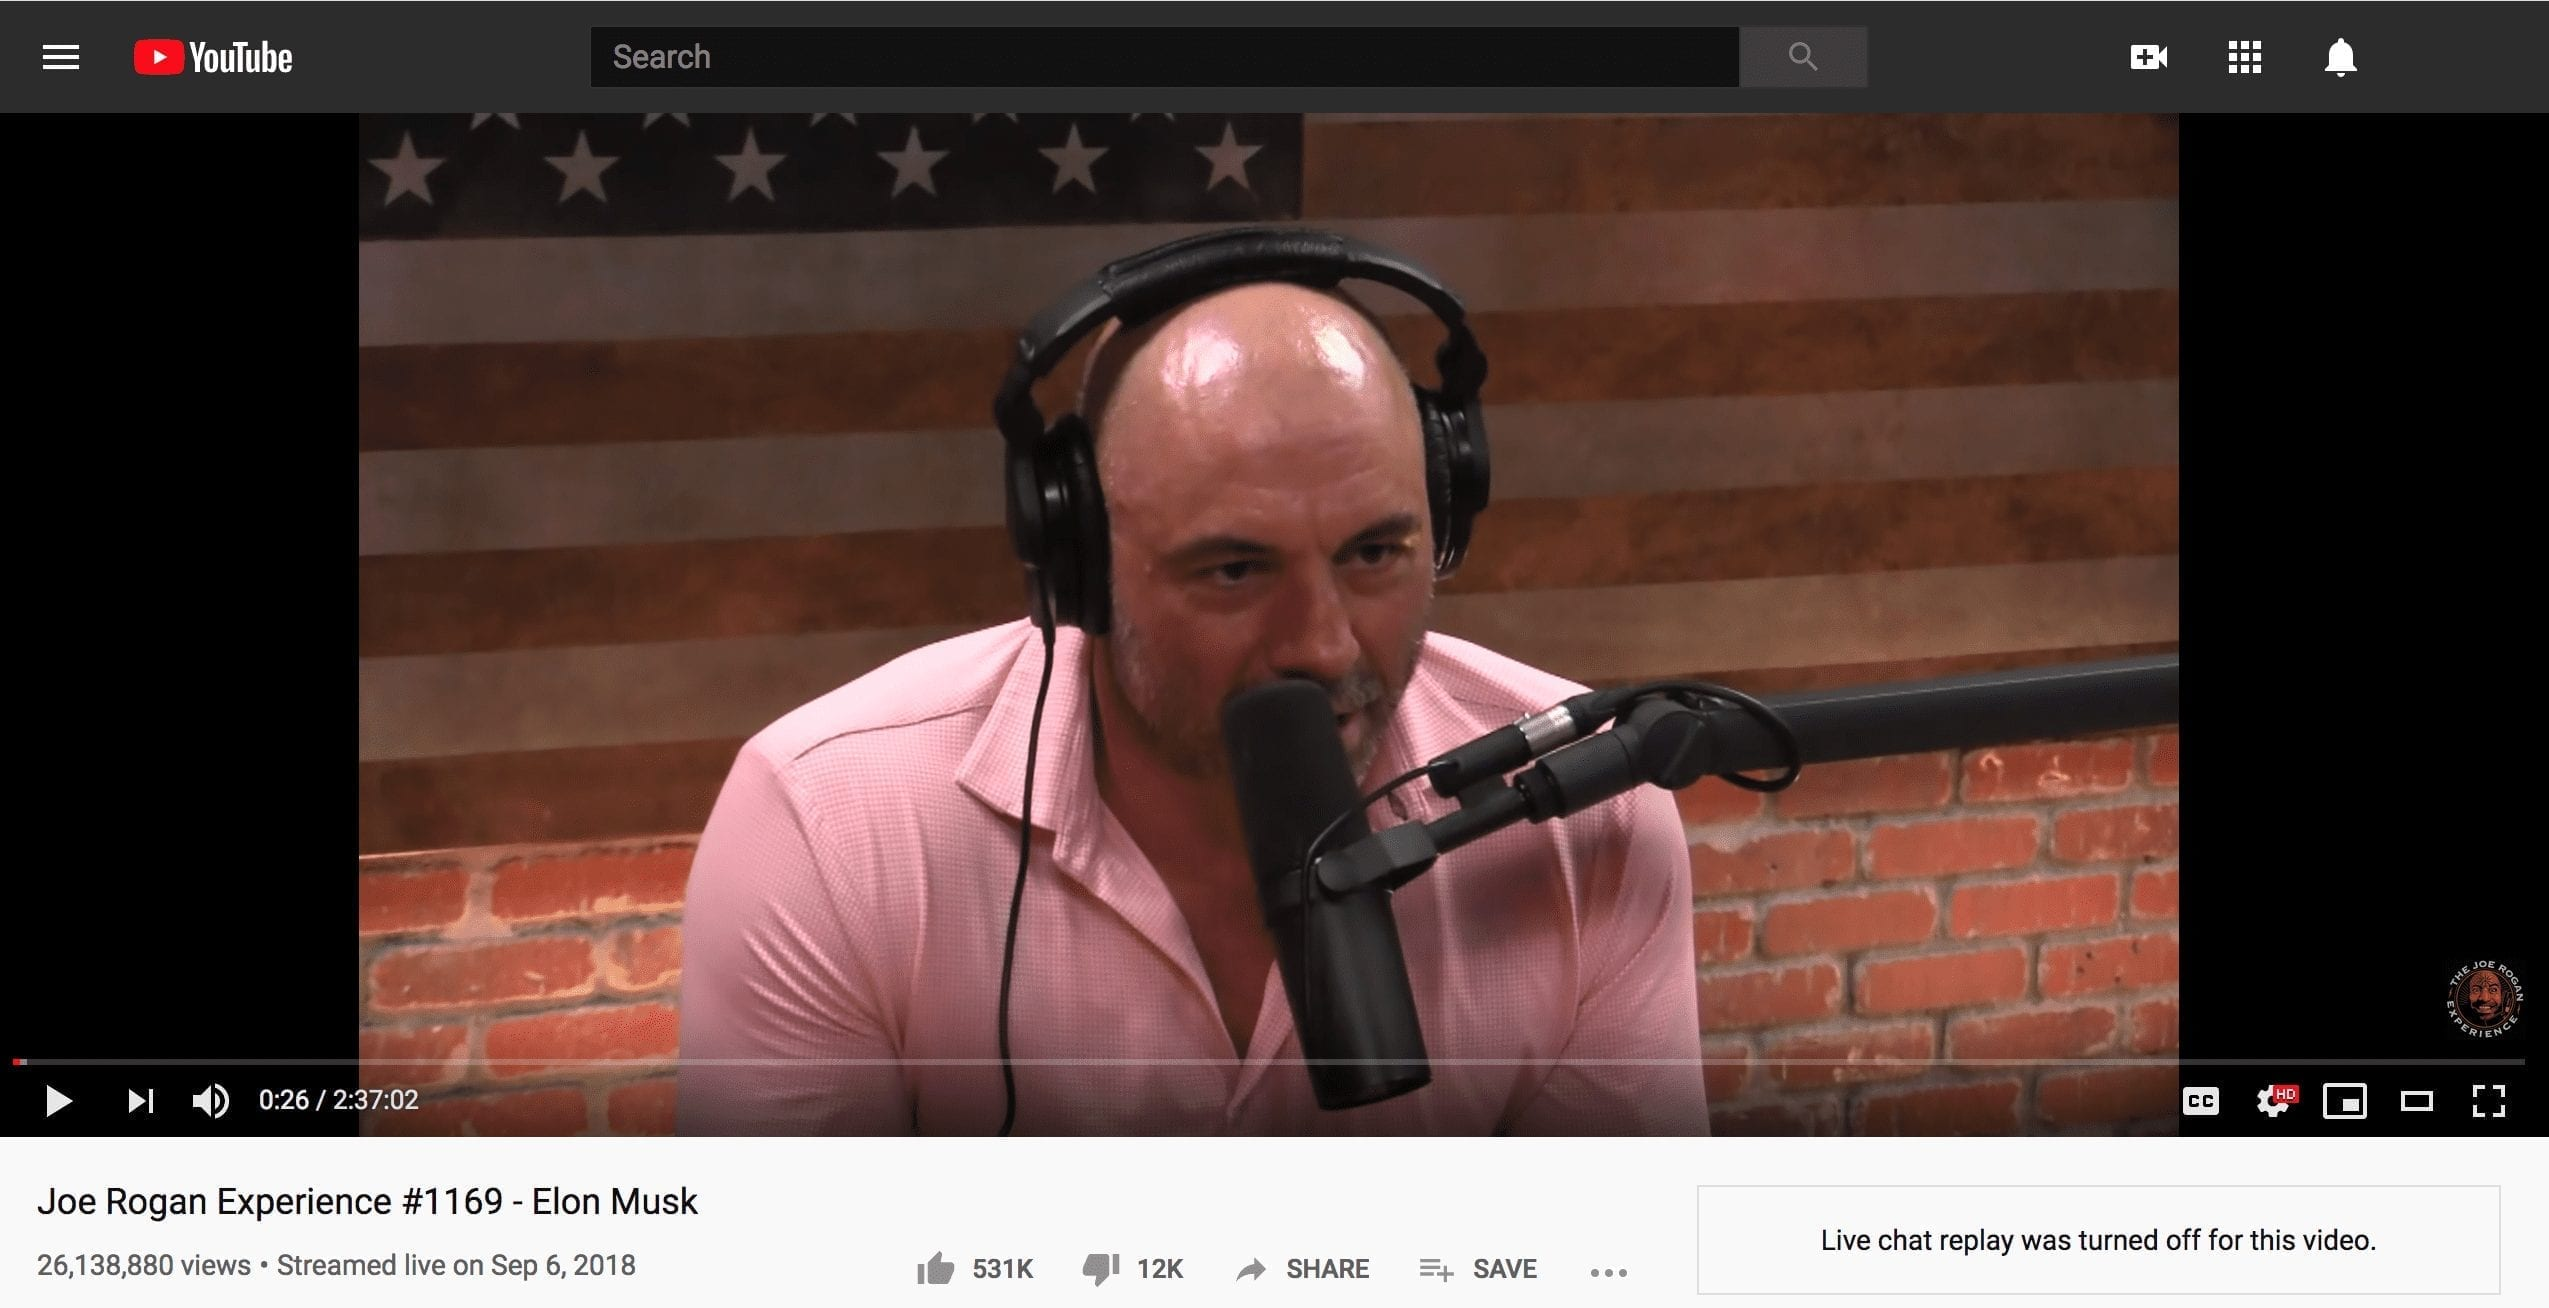 Media Criticism: Podcaster Joe Rogan Is Making News His Own Way